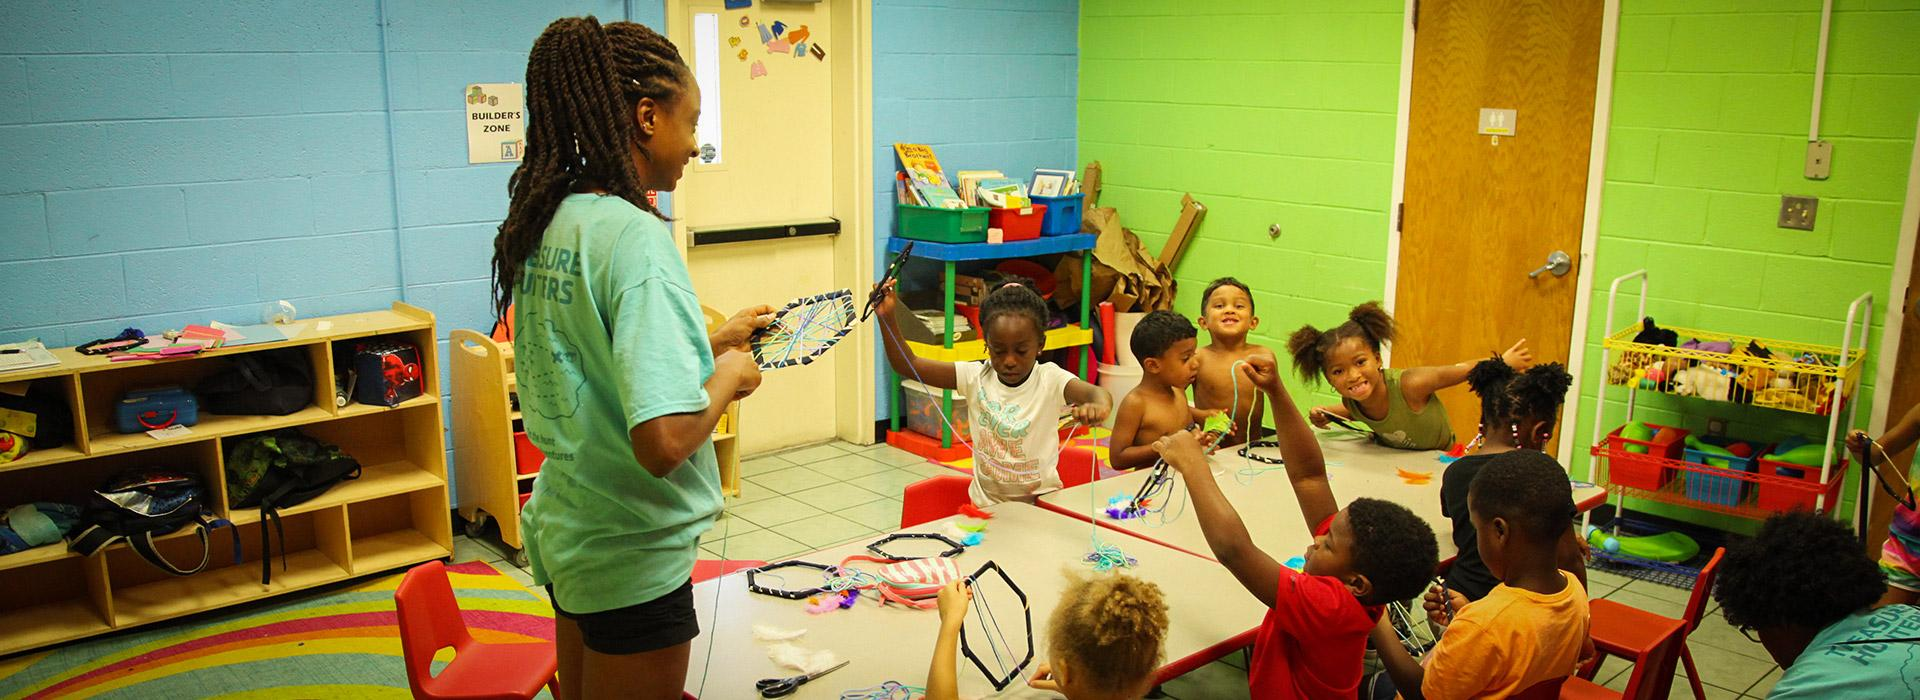 Effingham Street Family YMCA arts and crafts